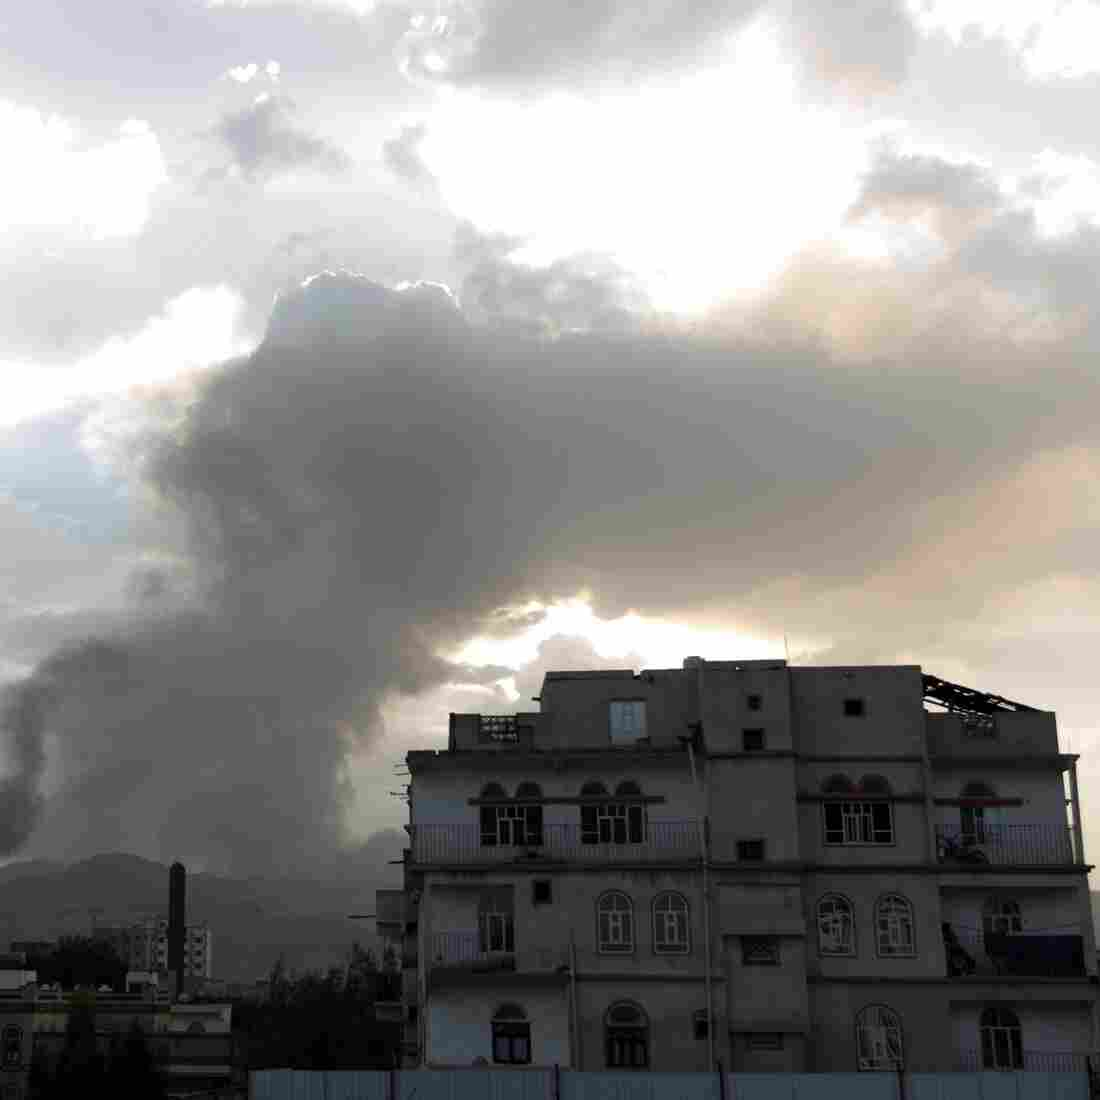 Smoke and flames reportedly from Shiite Houthi rebels' camps rise over part of the Yemeni capital, Sanaa, on Monday. Fierce fighting has left people trapped, including U.S. citizens.